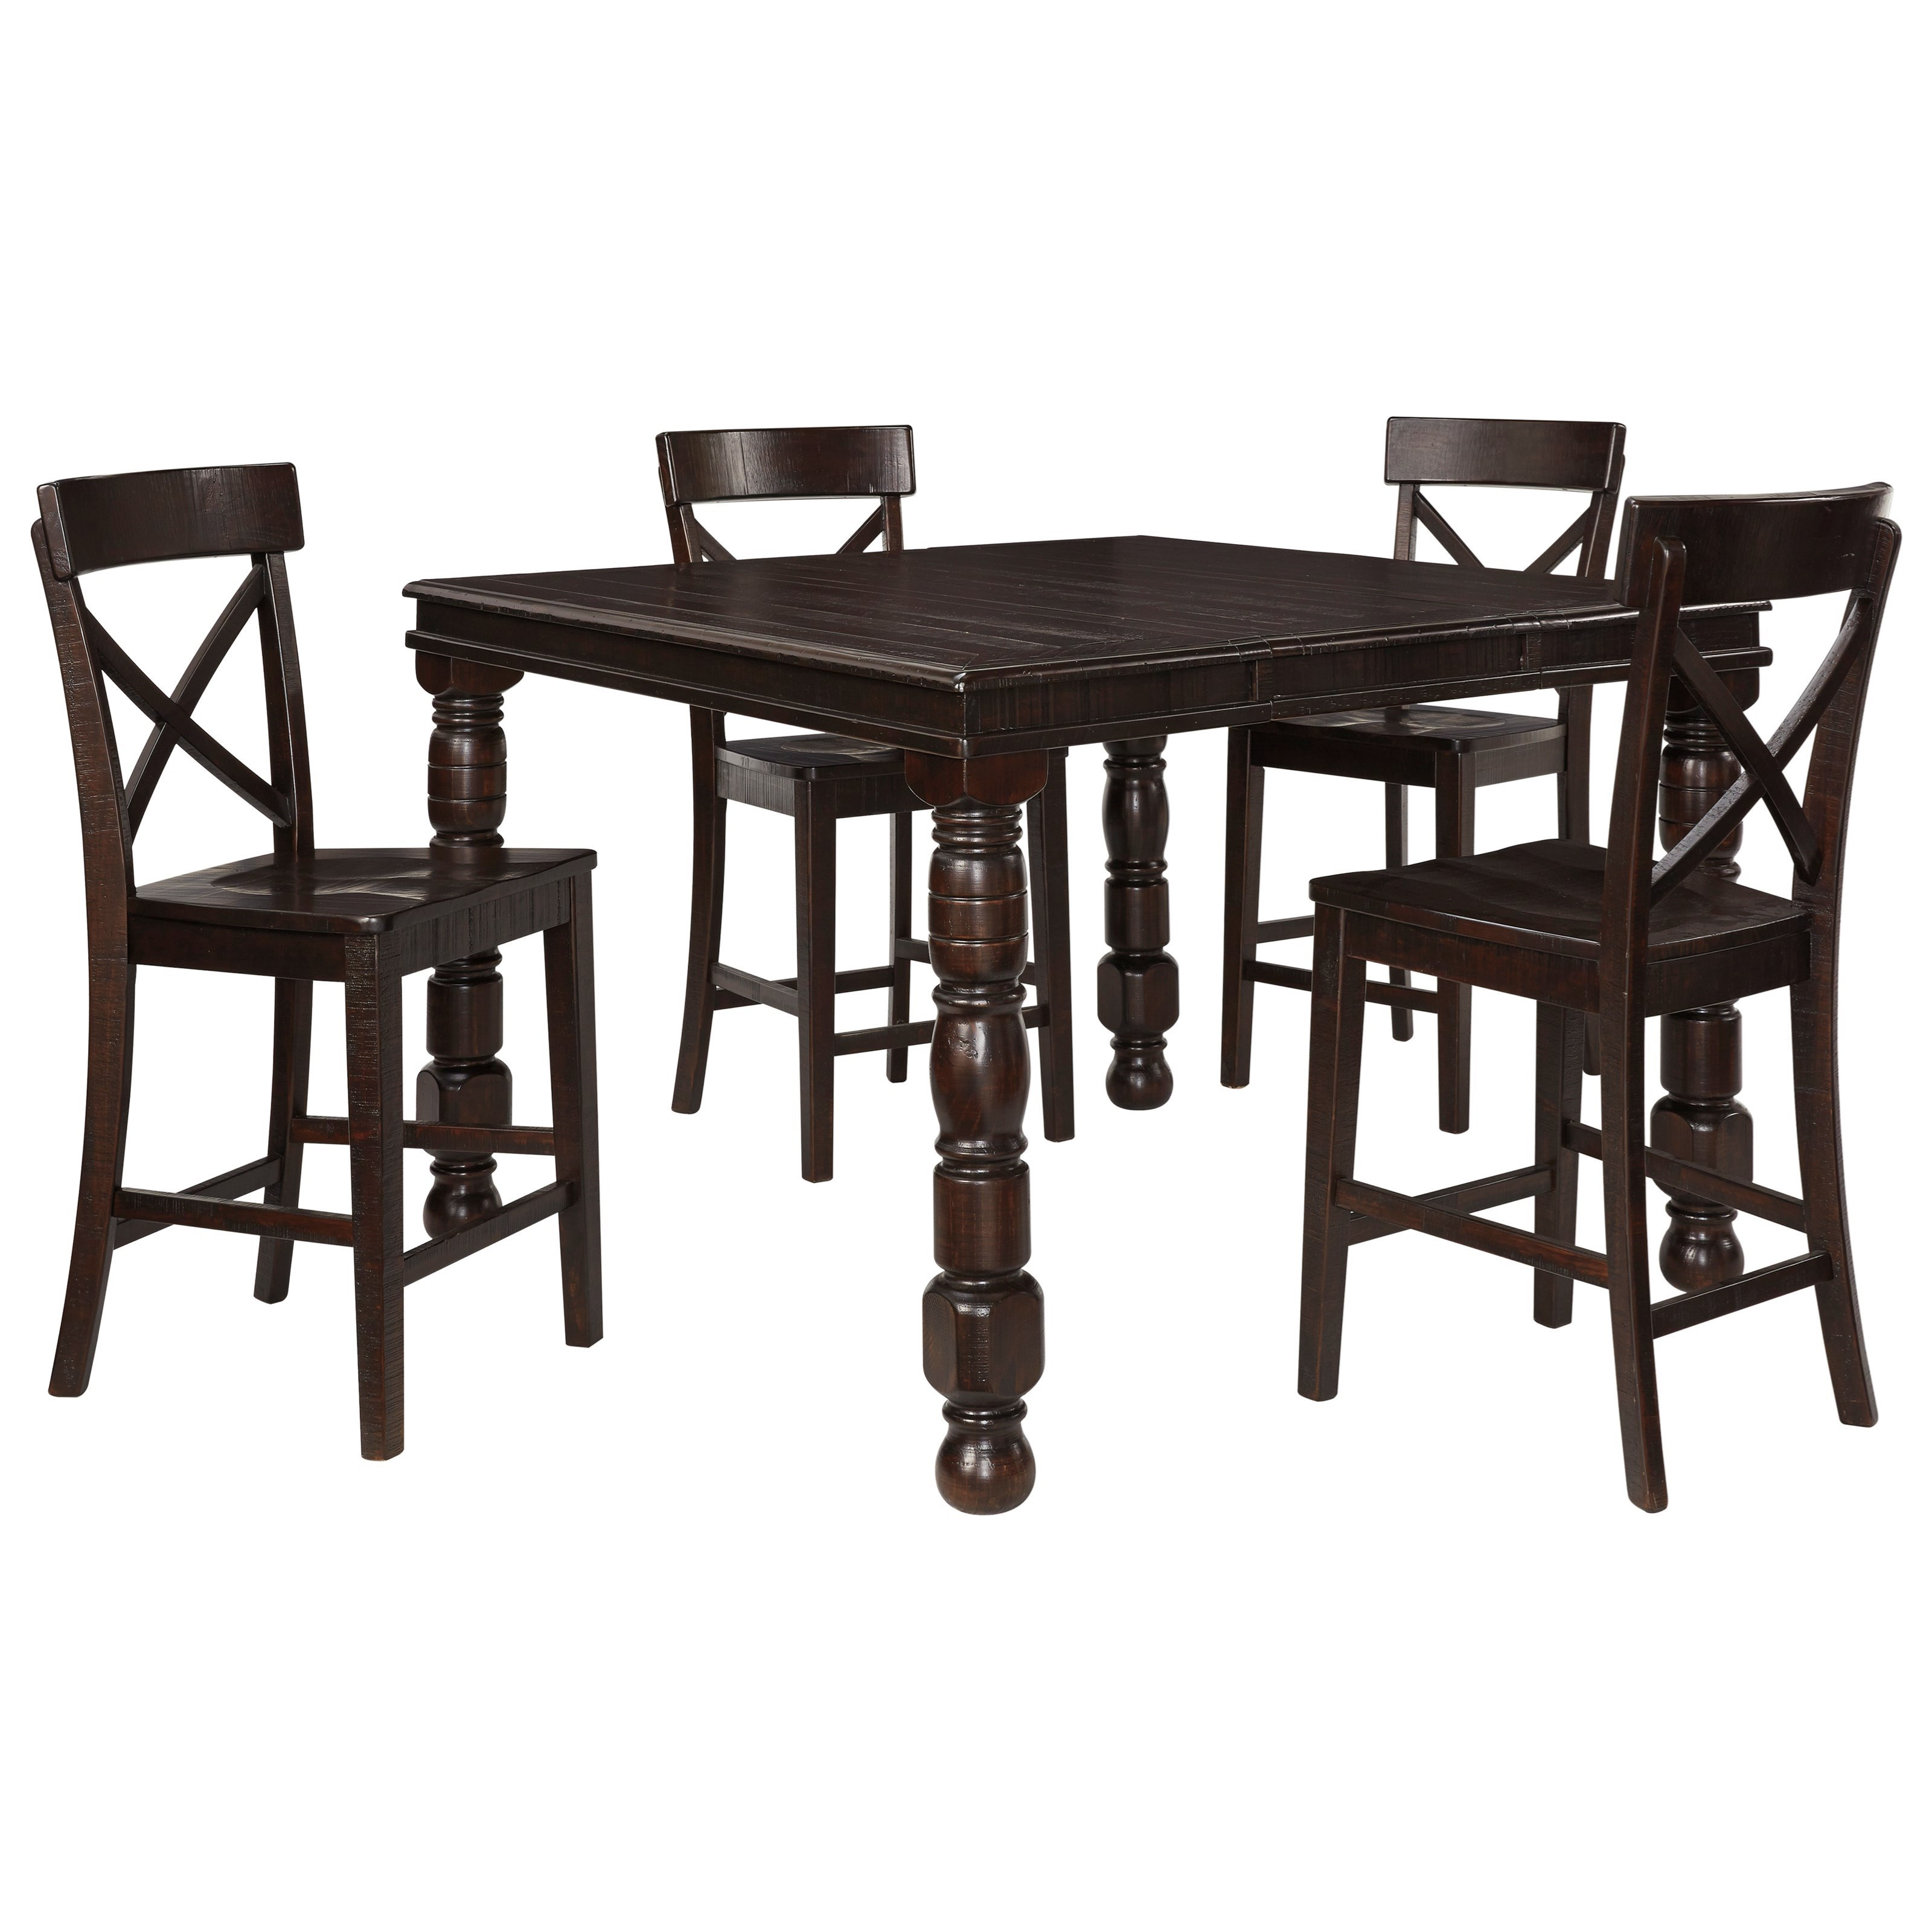 Signature Design by Ashley Gerlane 5-Piece Counter Table Set - Item Number: D657-32+4x124